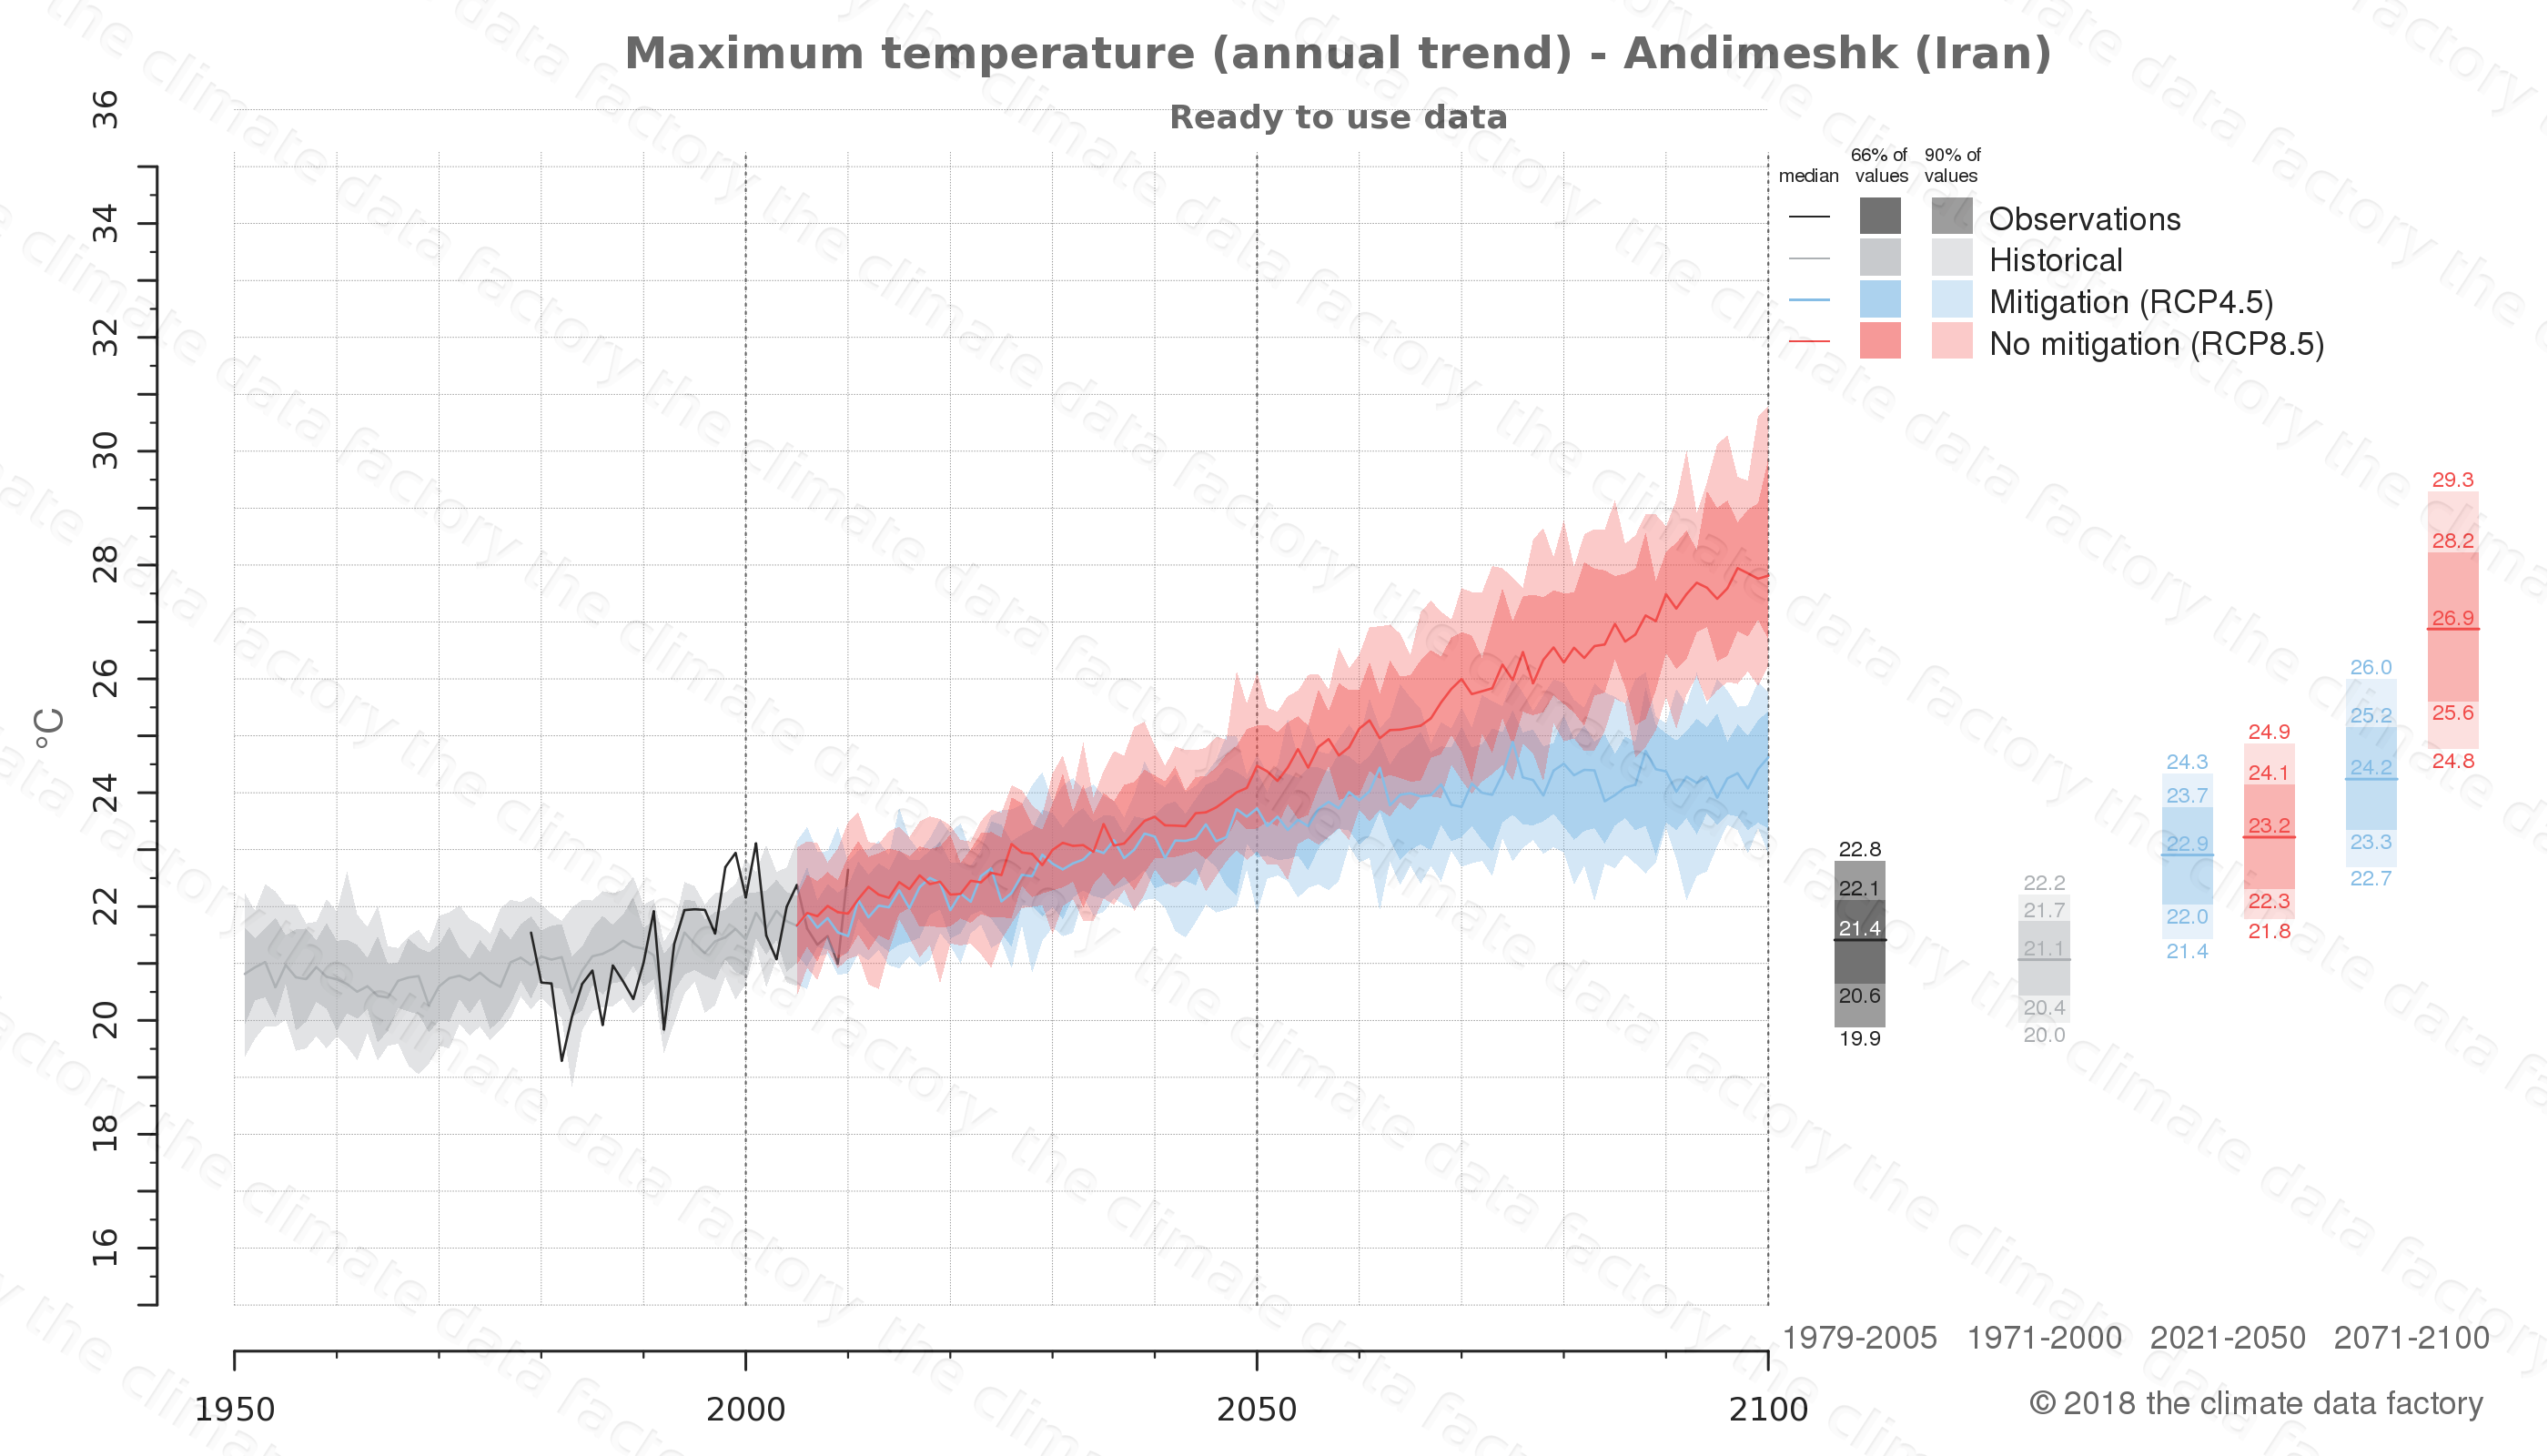 climate change data policy adaptation climate graph city data maximum-temperature andimeshk iran